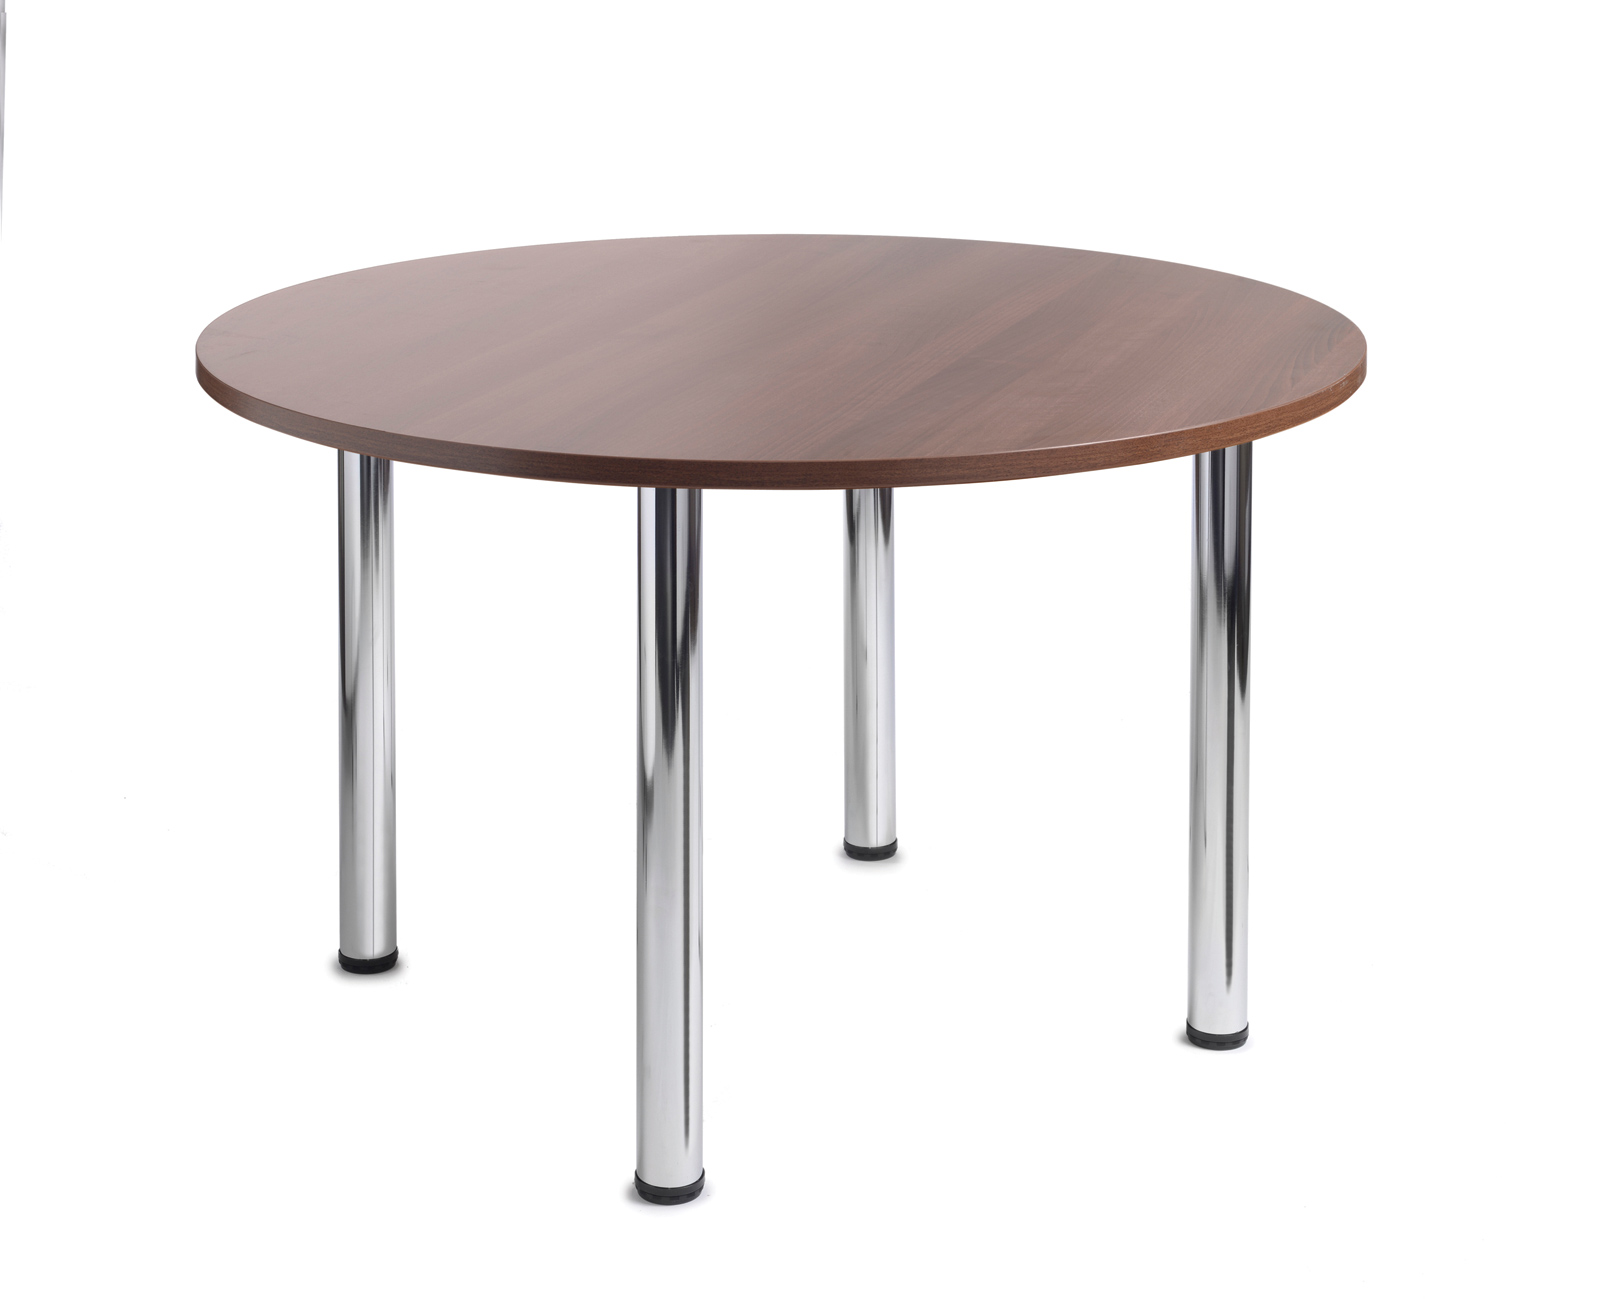 1000mm diameter Top + Chrome radial Legs - Walnut